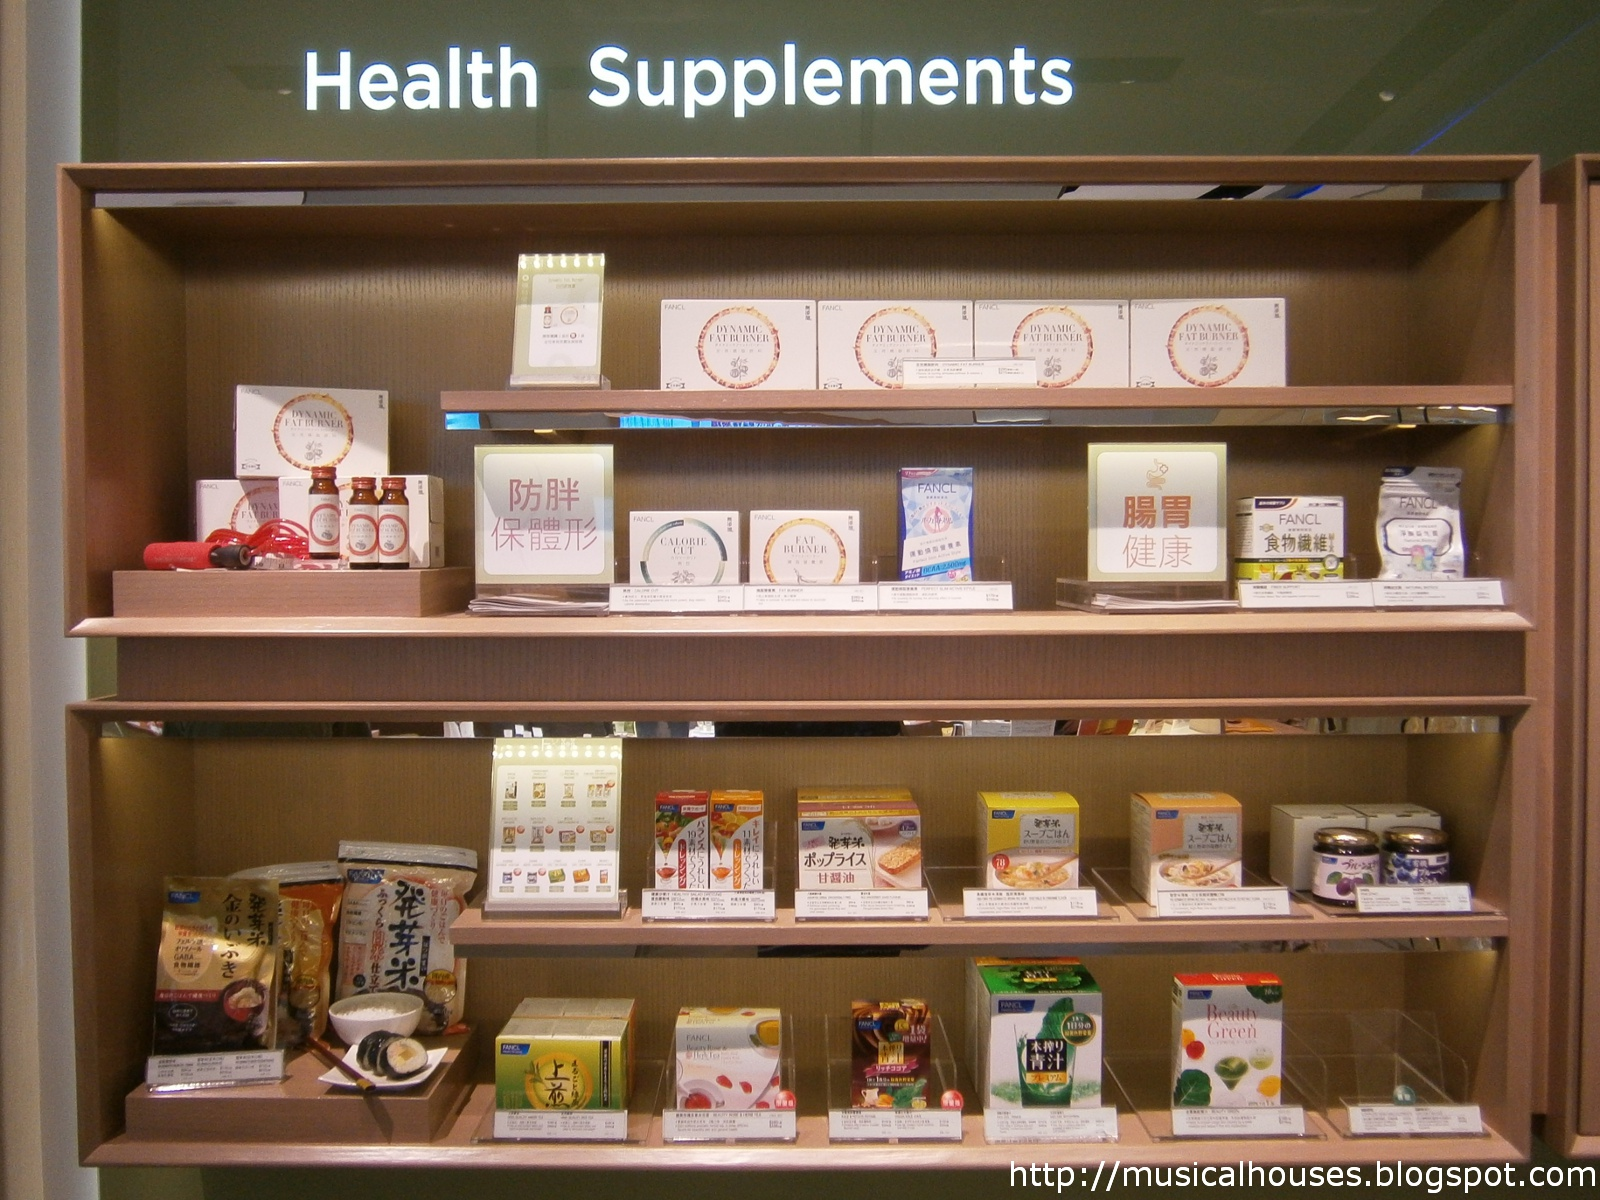 Fancl Hong Kong City Plaza Store Supplements